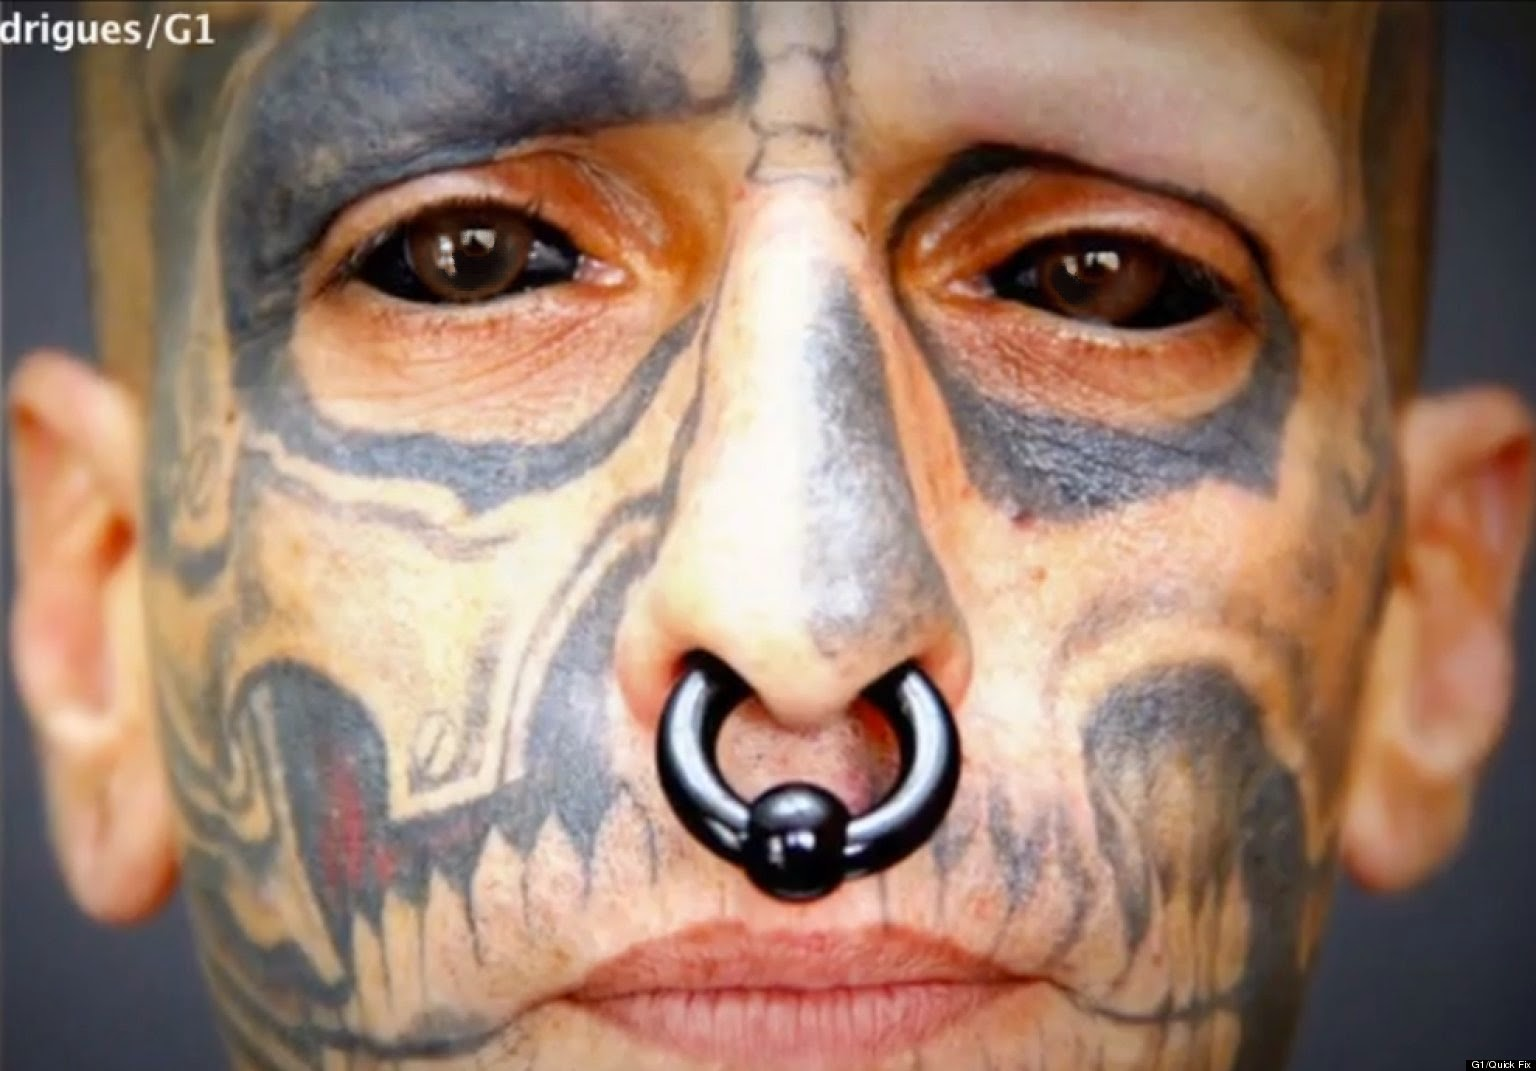 San diego global laser vision cosmetics latest eye trend for Prison eye tattoos